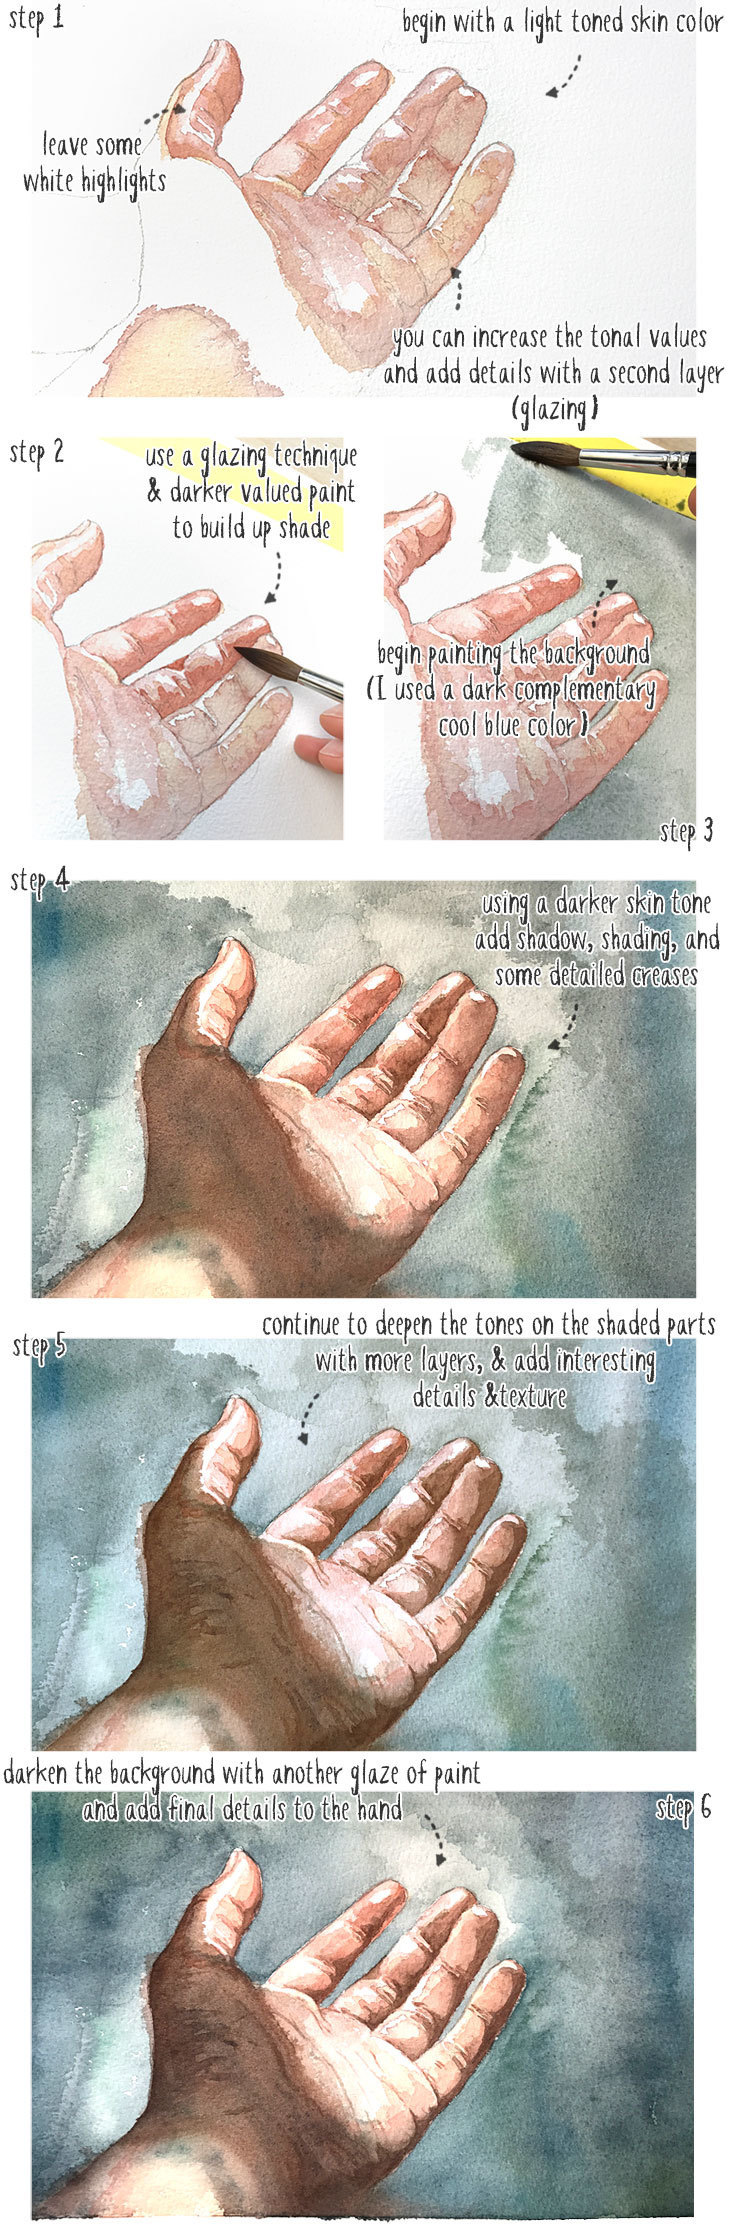 watercolor skin tone step by step demo